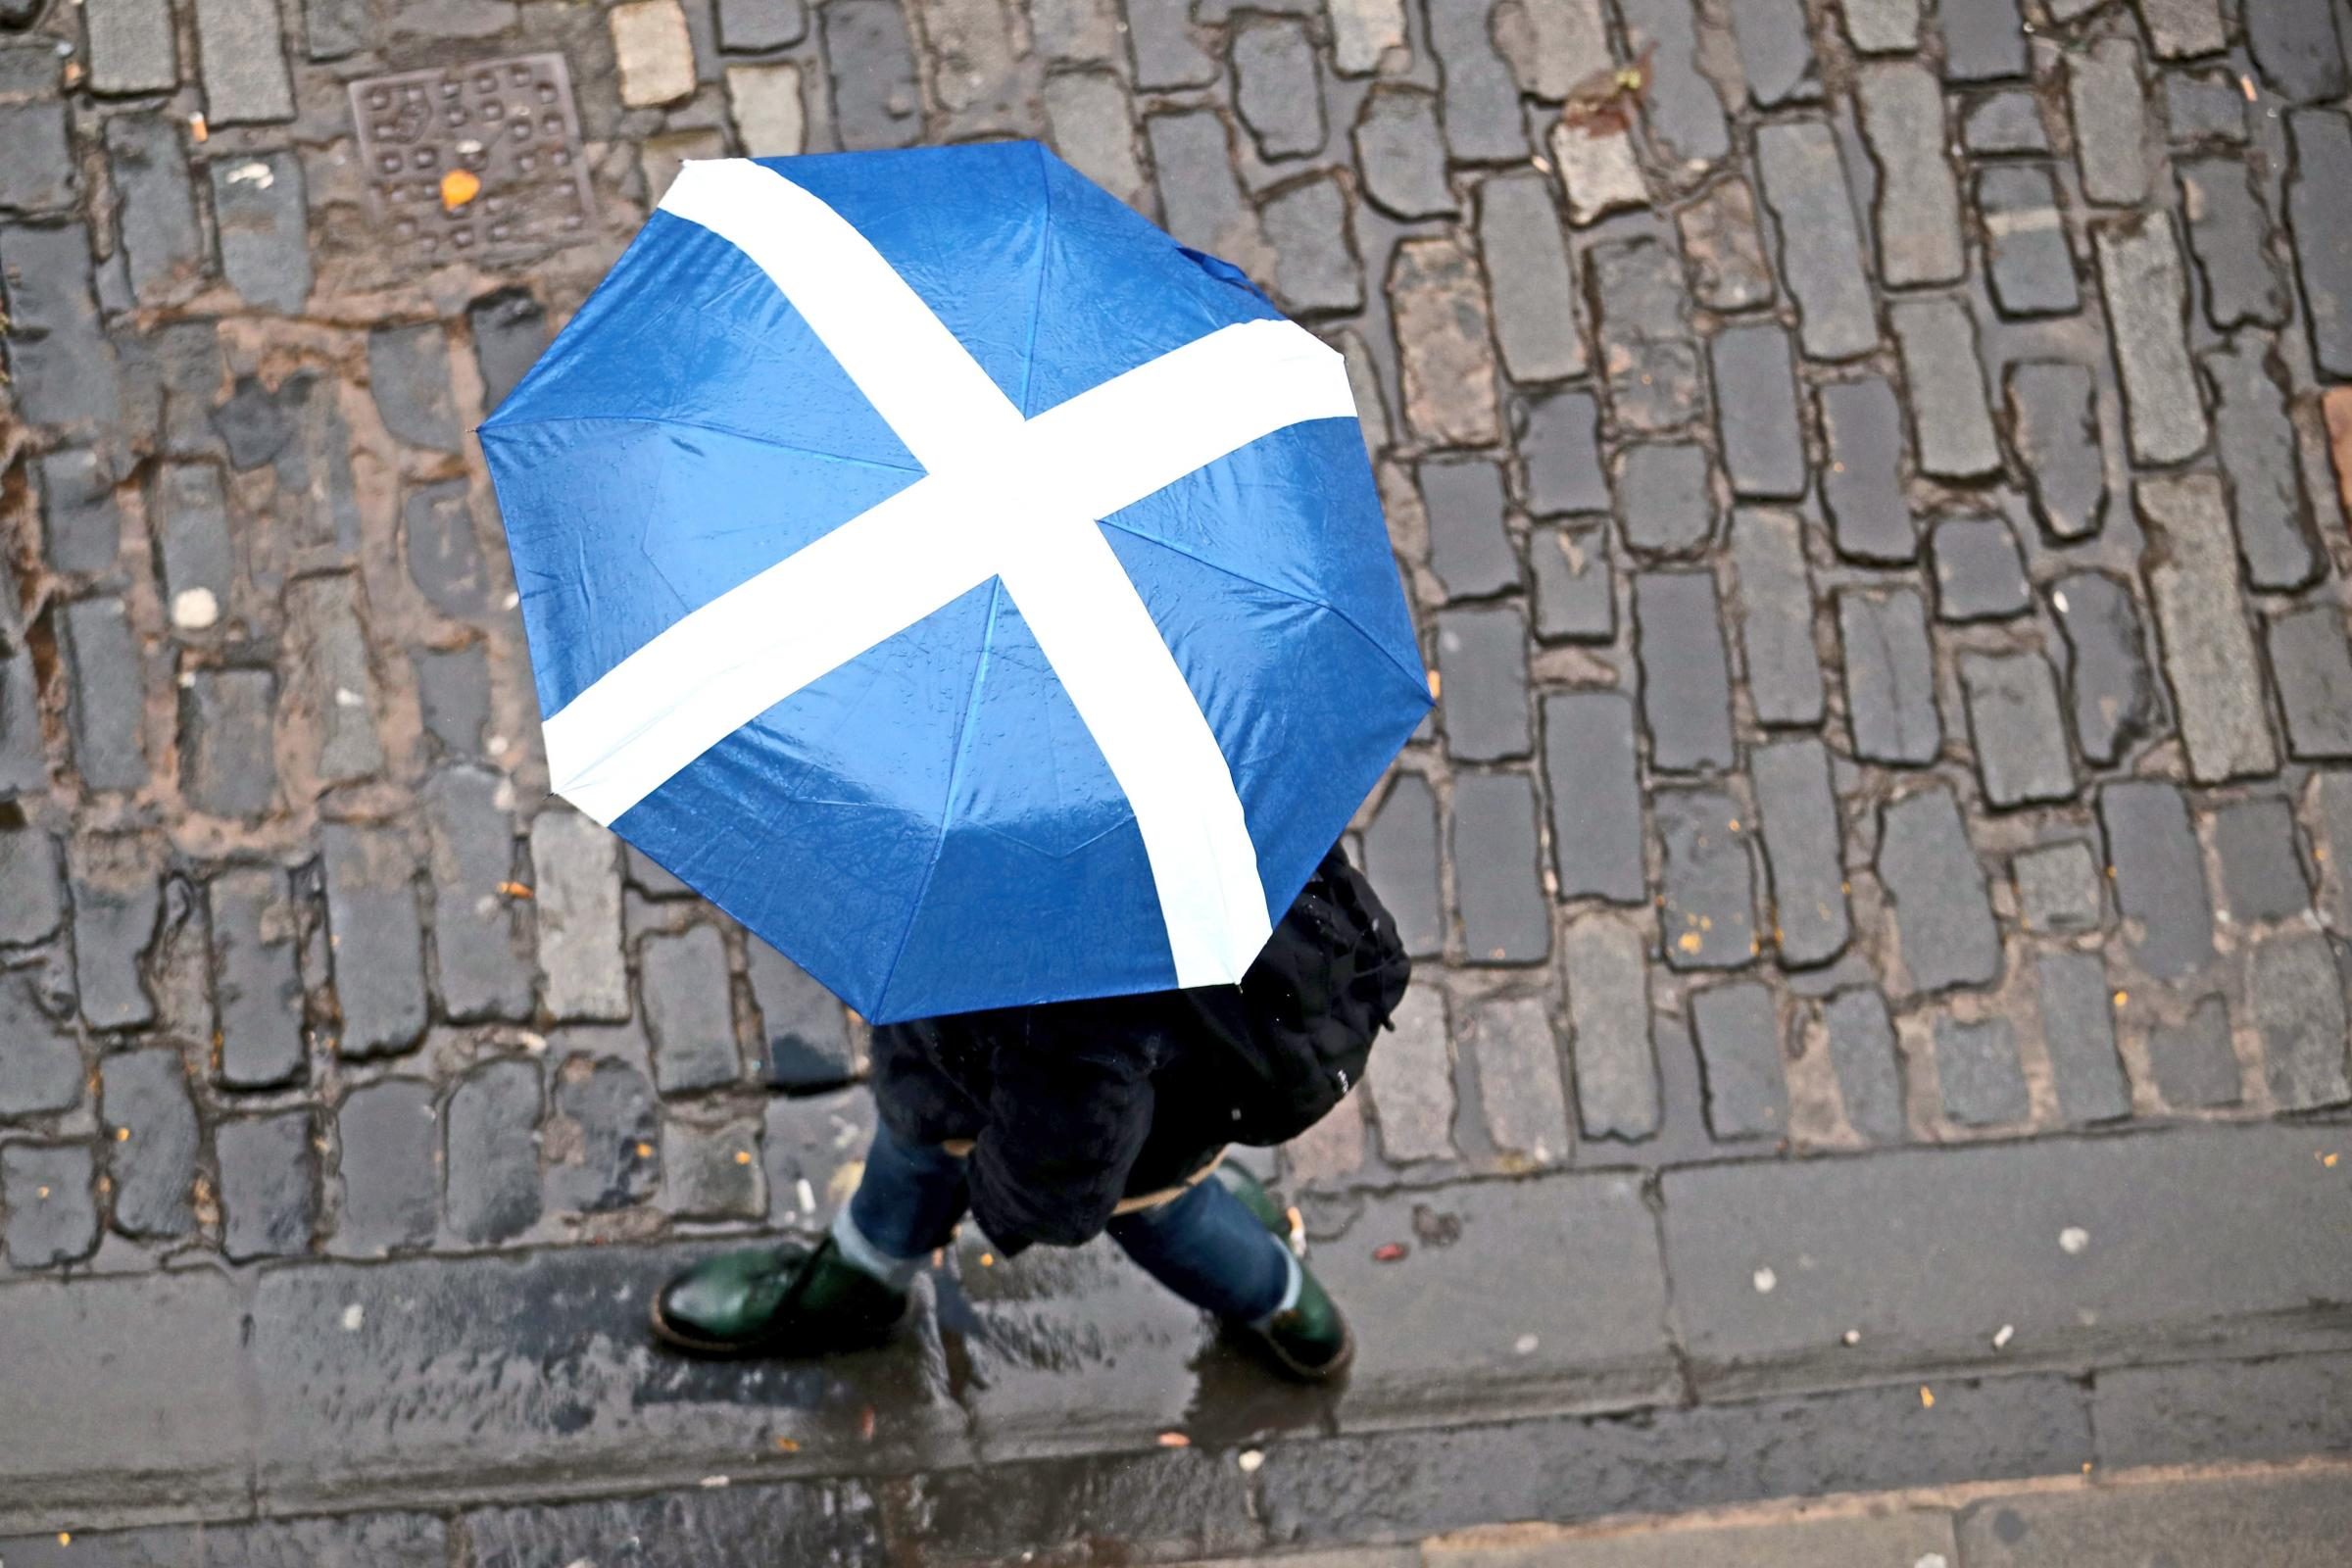 Homes and businesses at risk of flooding in parts of Scotland